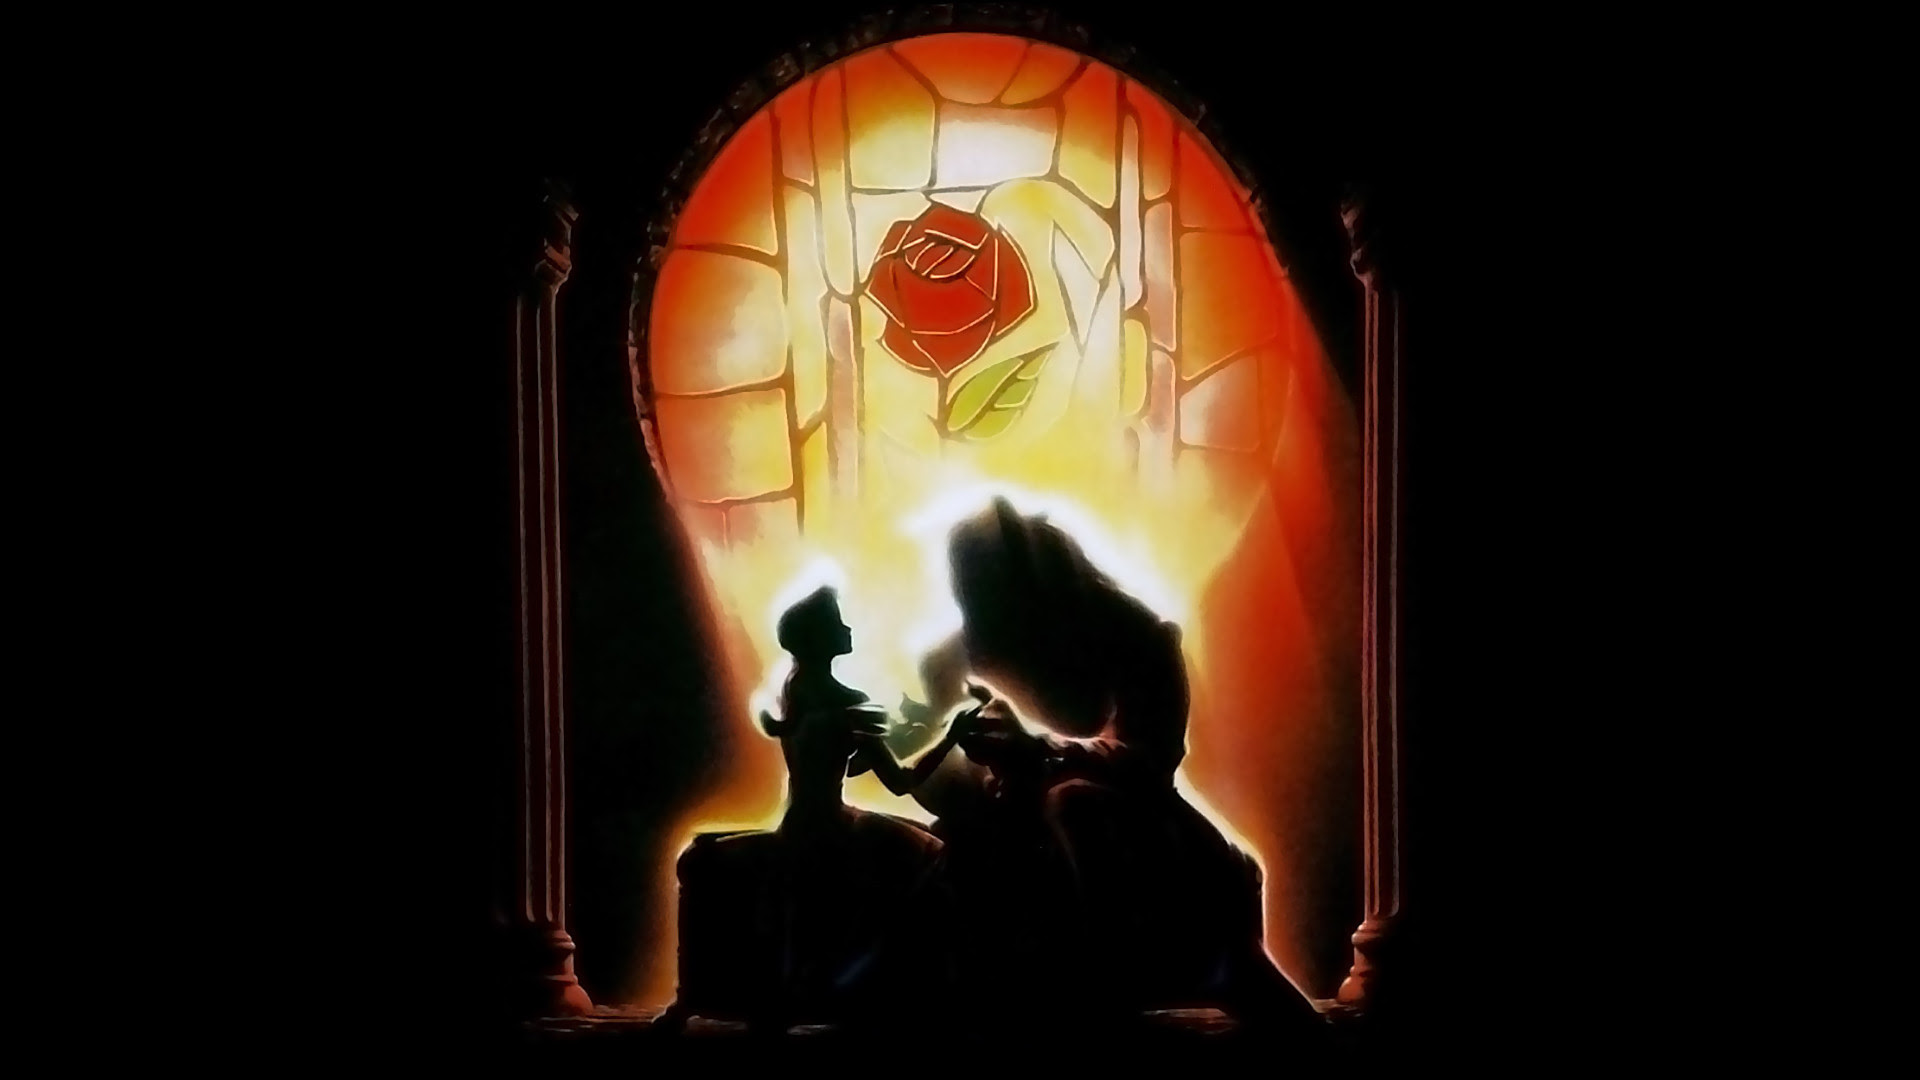 Beauty And The Beast 壁紙 Original Poster 美女と野獣 壁紙